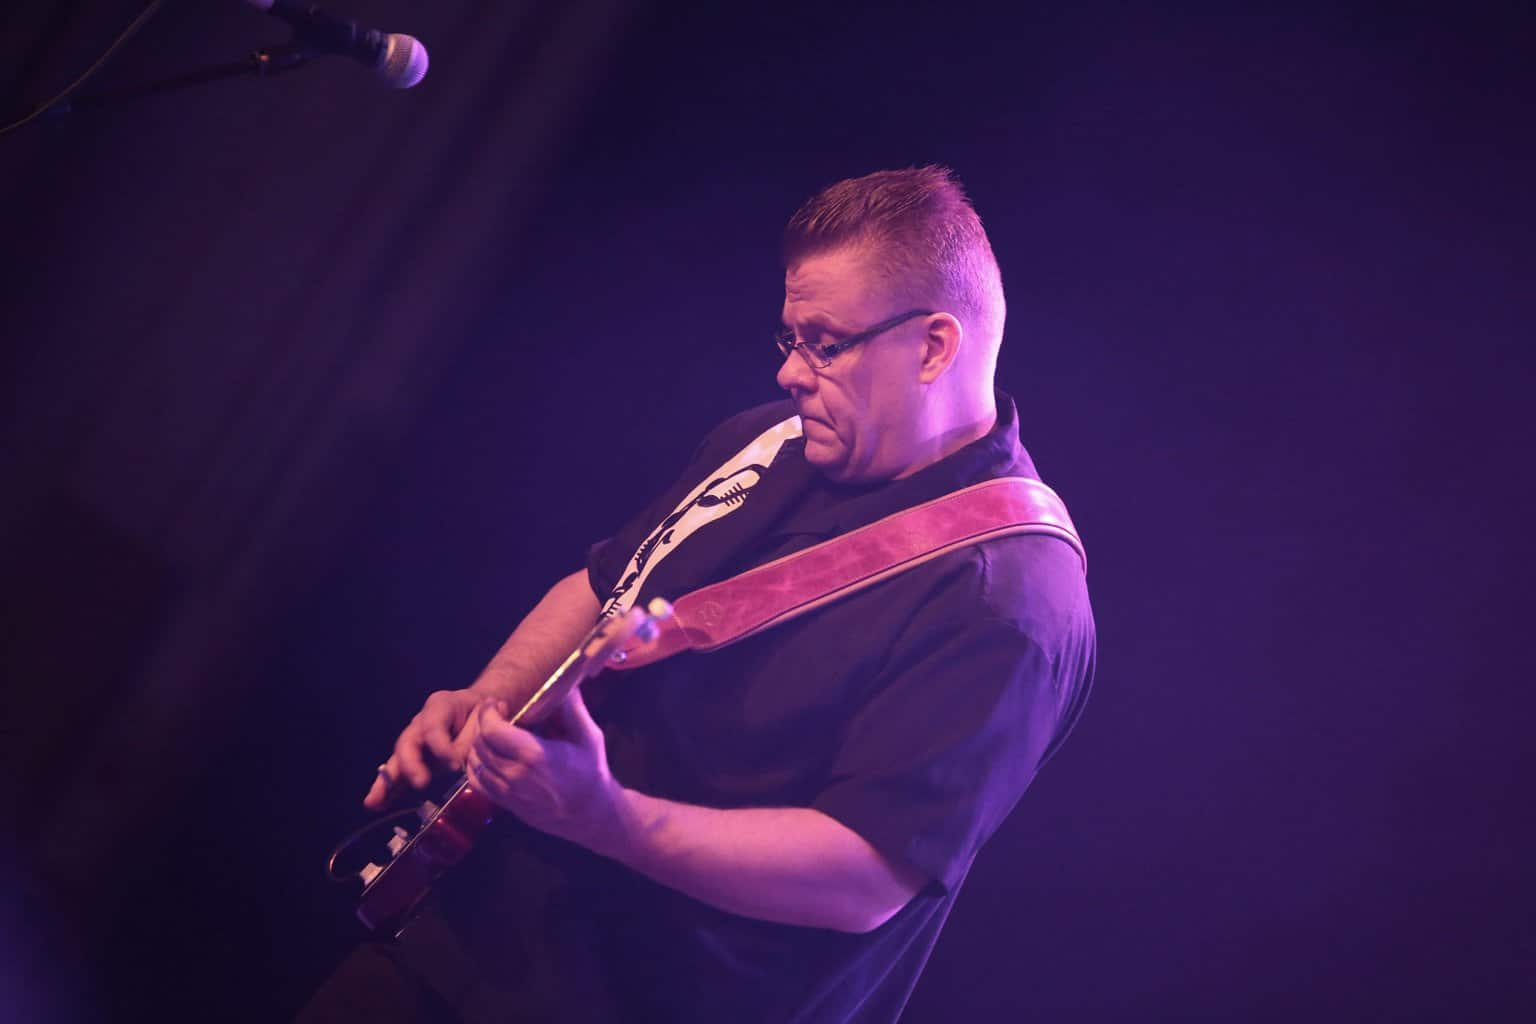 Performer Scene: Juha, guitarist with The Beatmakers, Finland